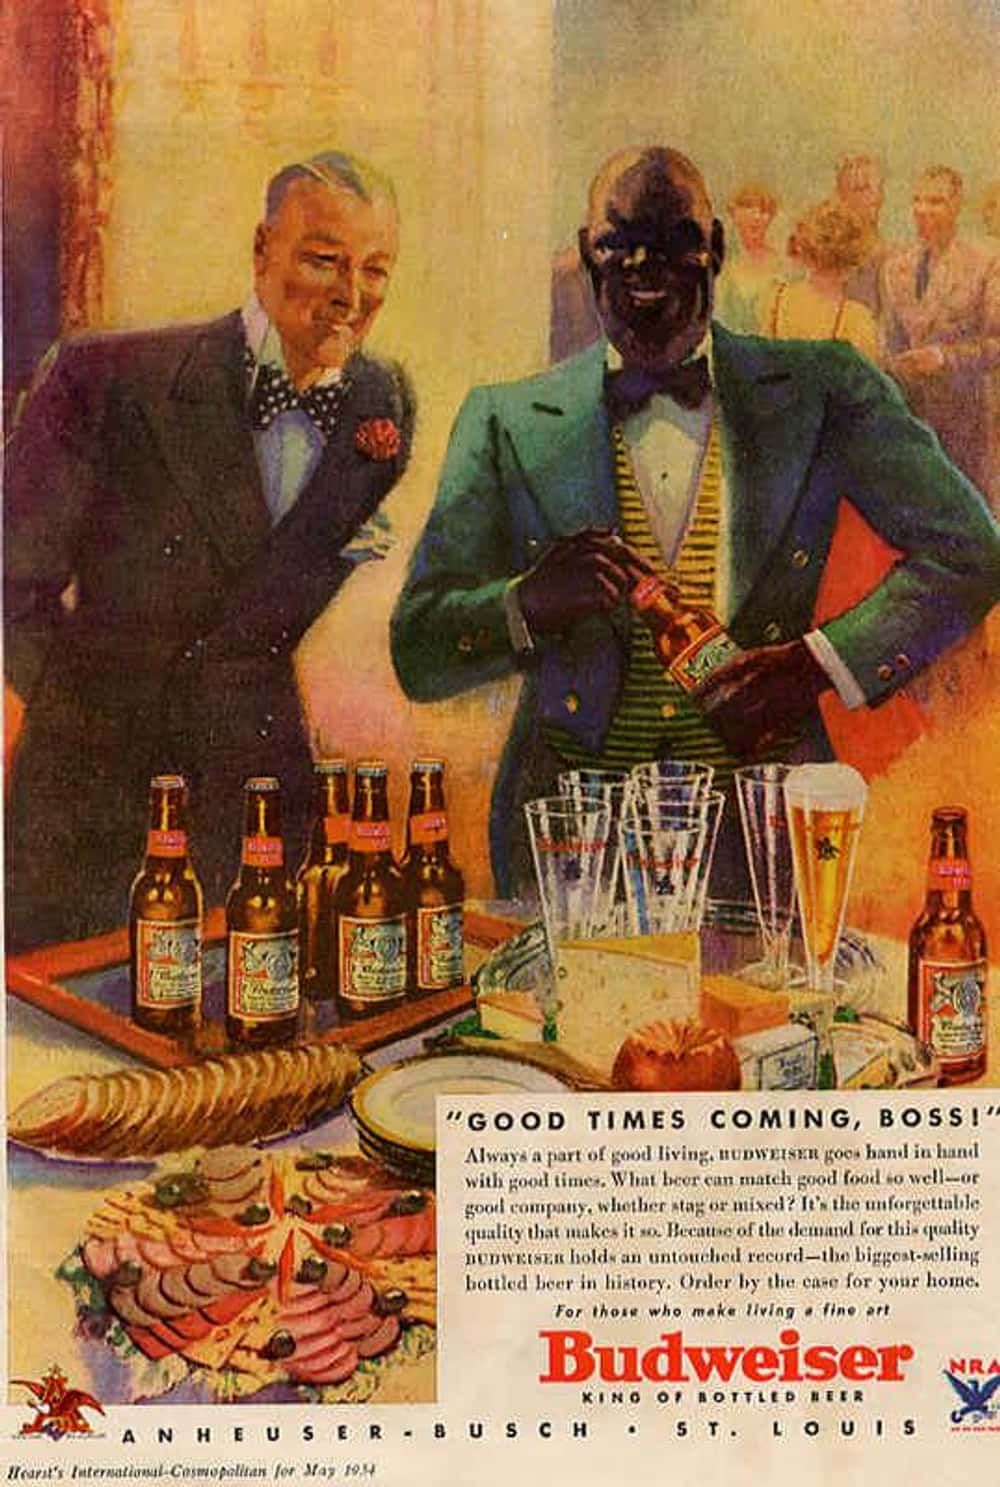 This Ad Is Racist Like a Boss! is listed (or ranked) 30 on the list Vintage Ads That Are Horribly Racist